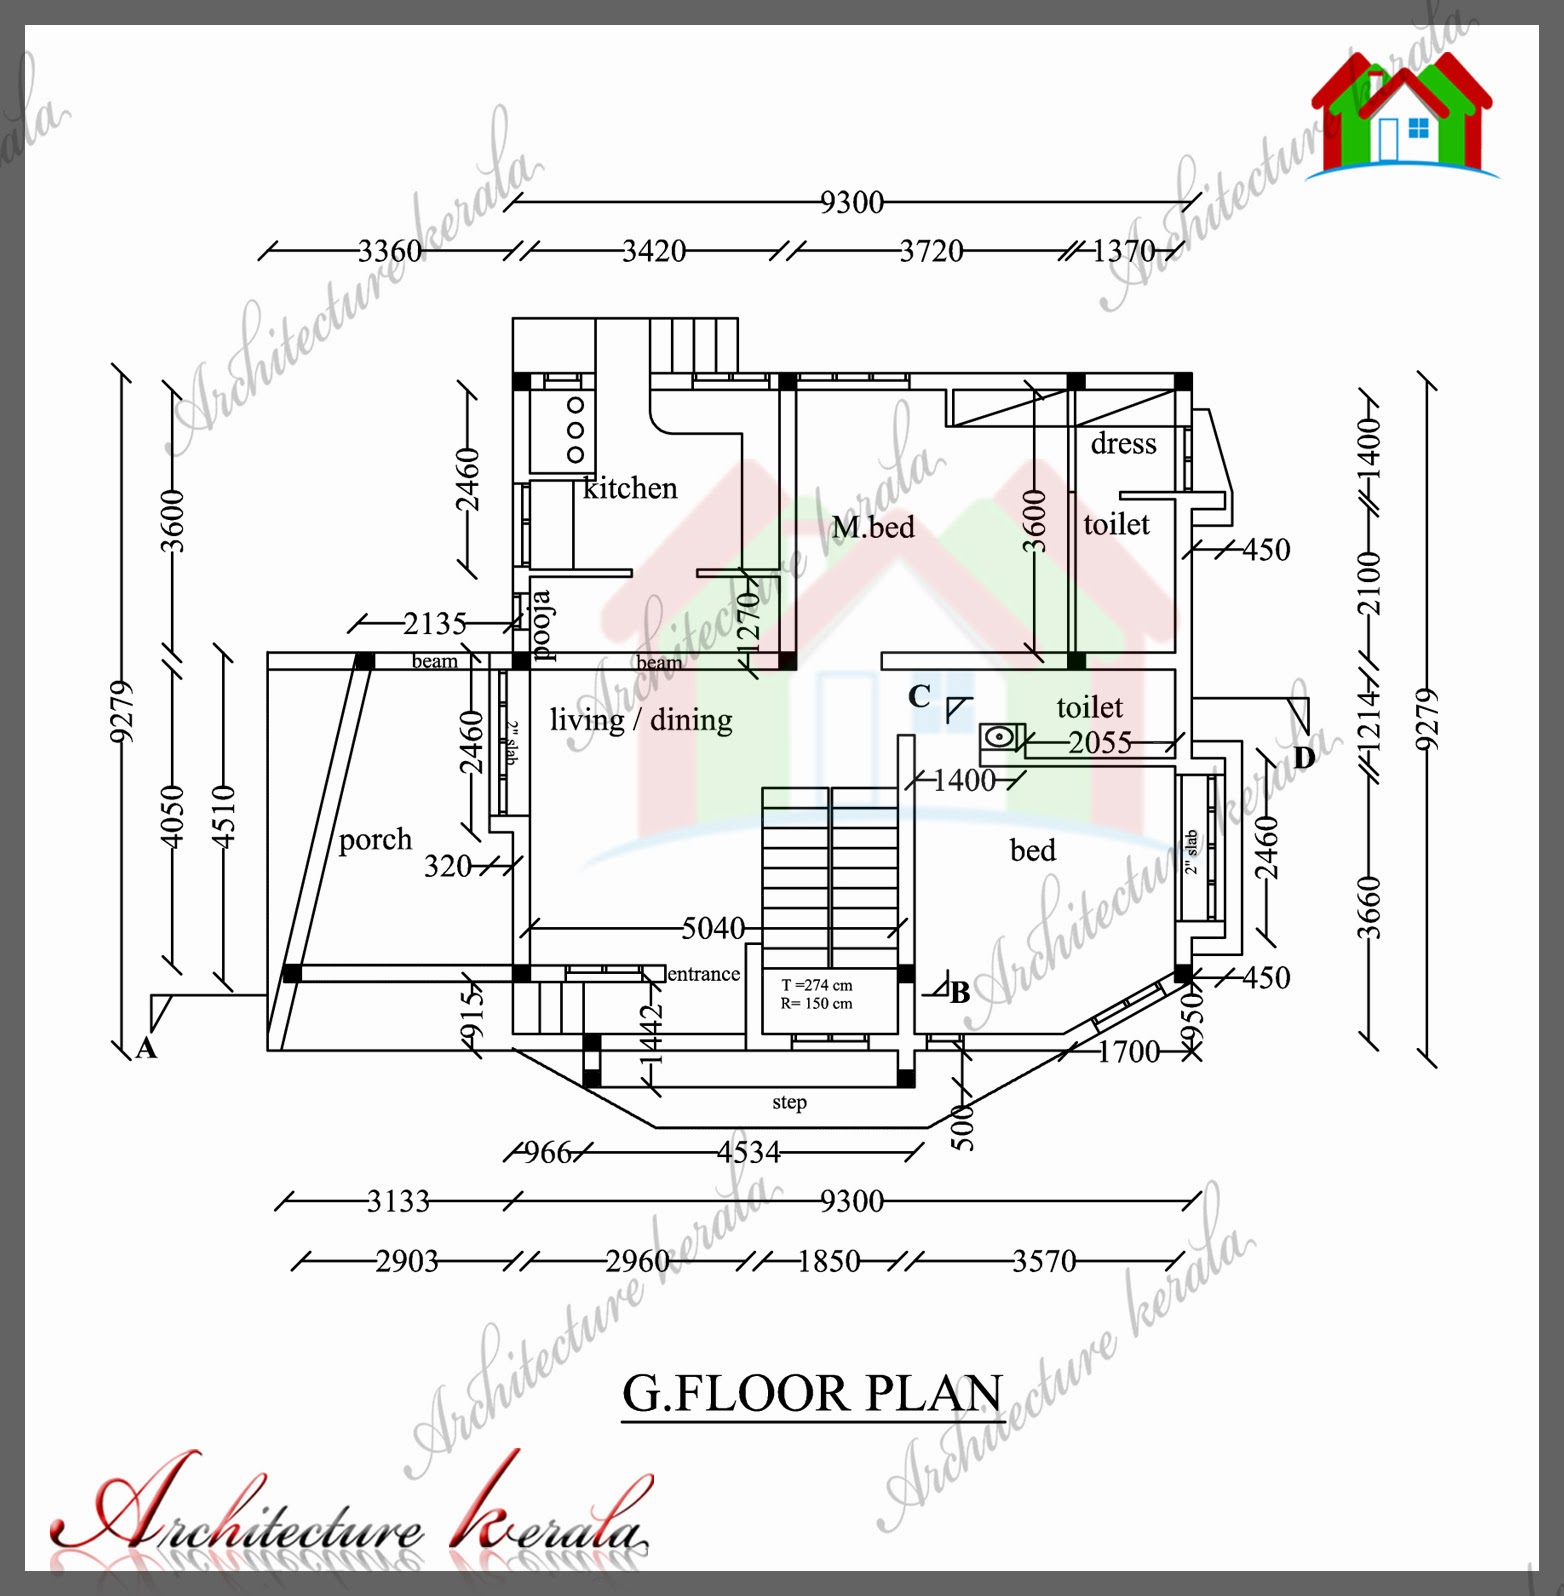 10x12 kitchen floor plans - wood floors